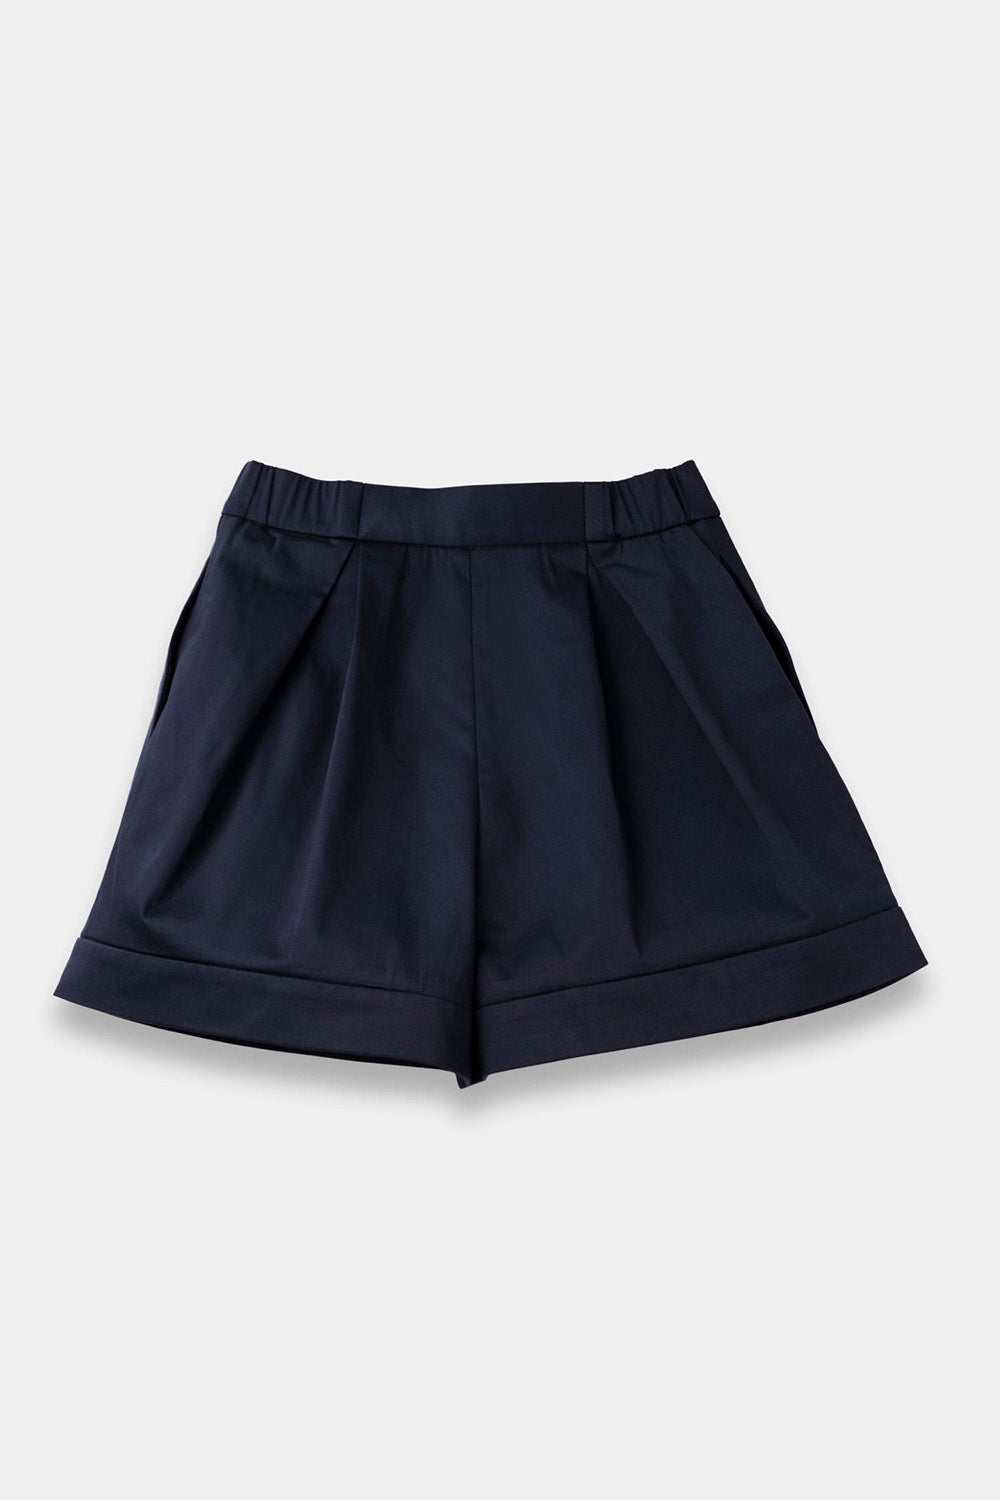 SEANNUNG - 深藍色層次褲裙 Layered Skort in Navy - Woman